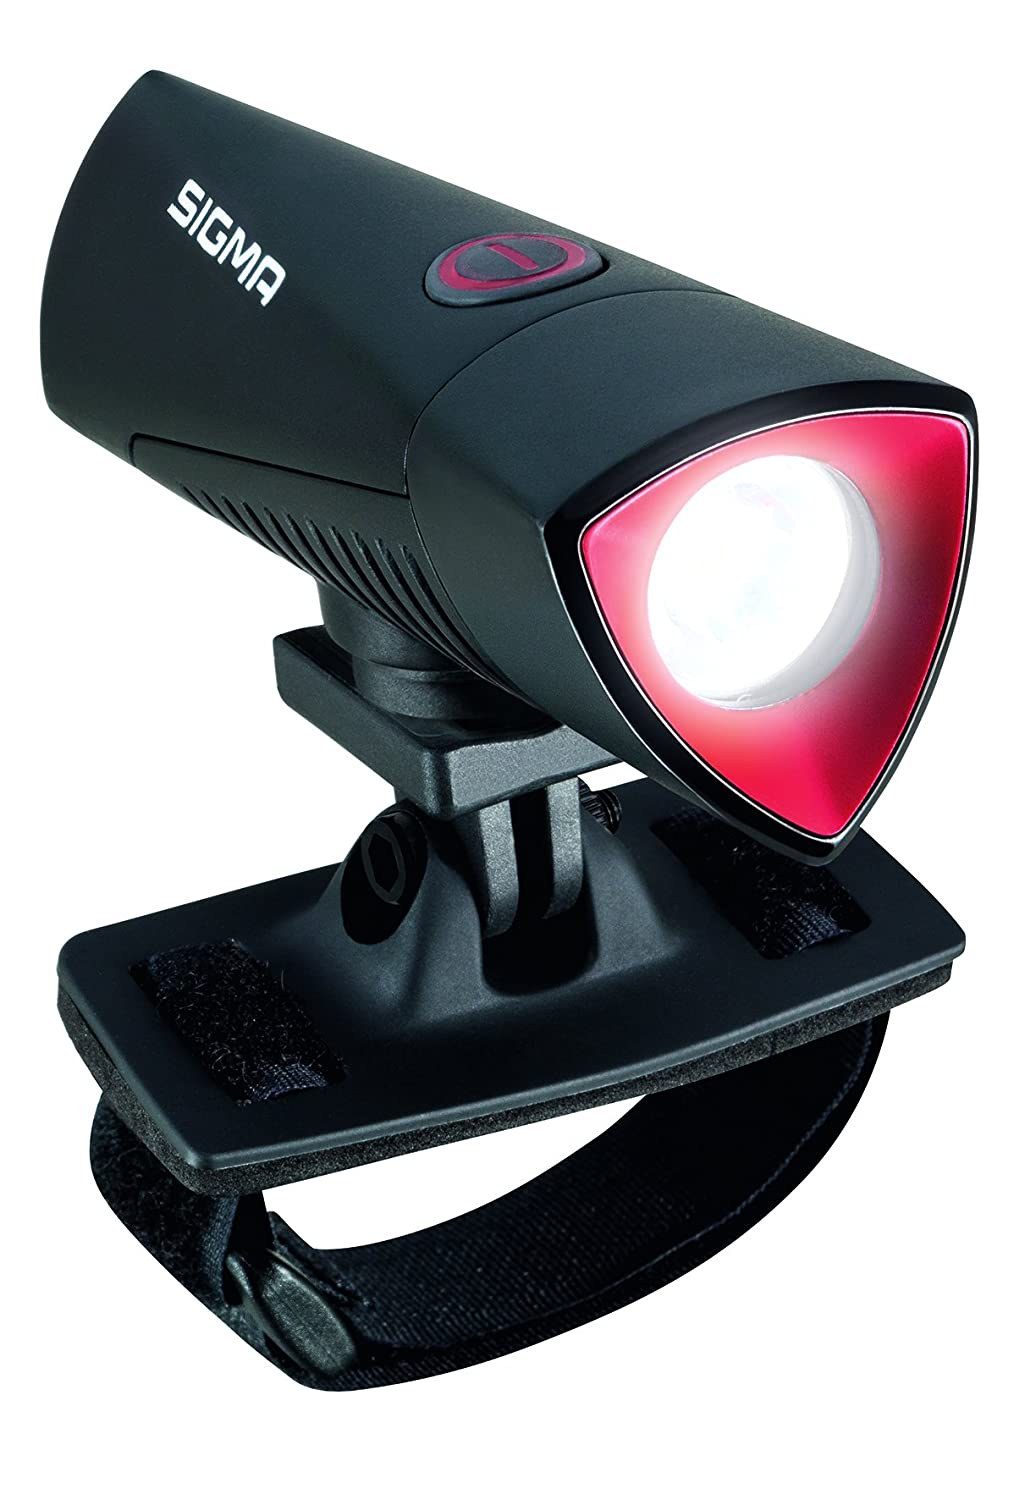 Sigma Sport Buster 700 USB Rechargeable Bicycle Headlight 19700